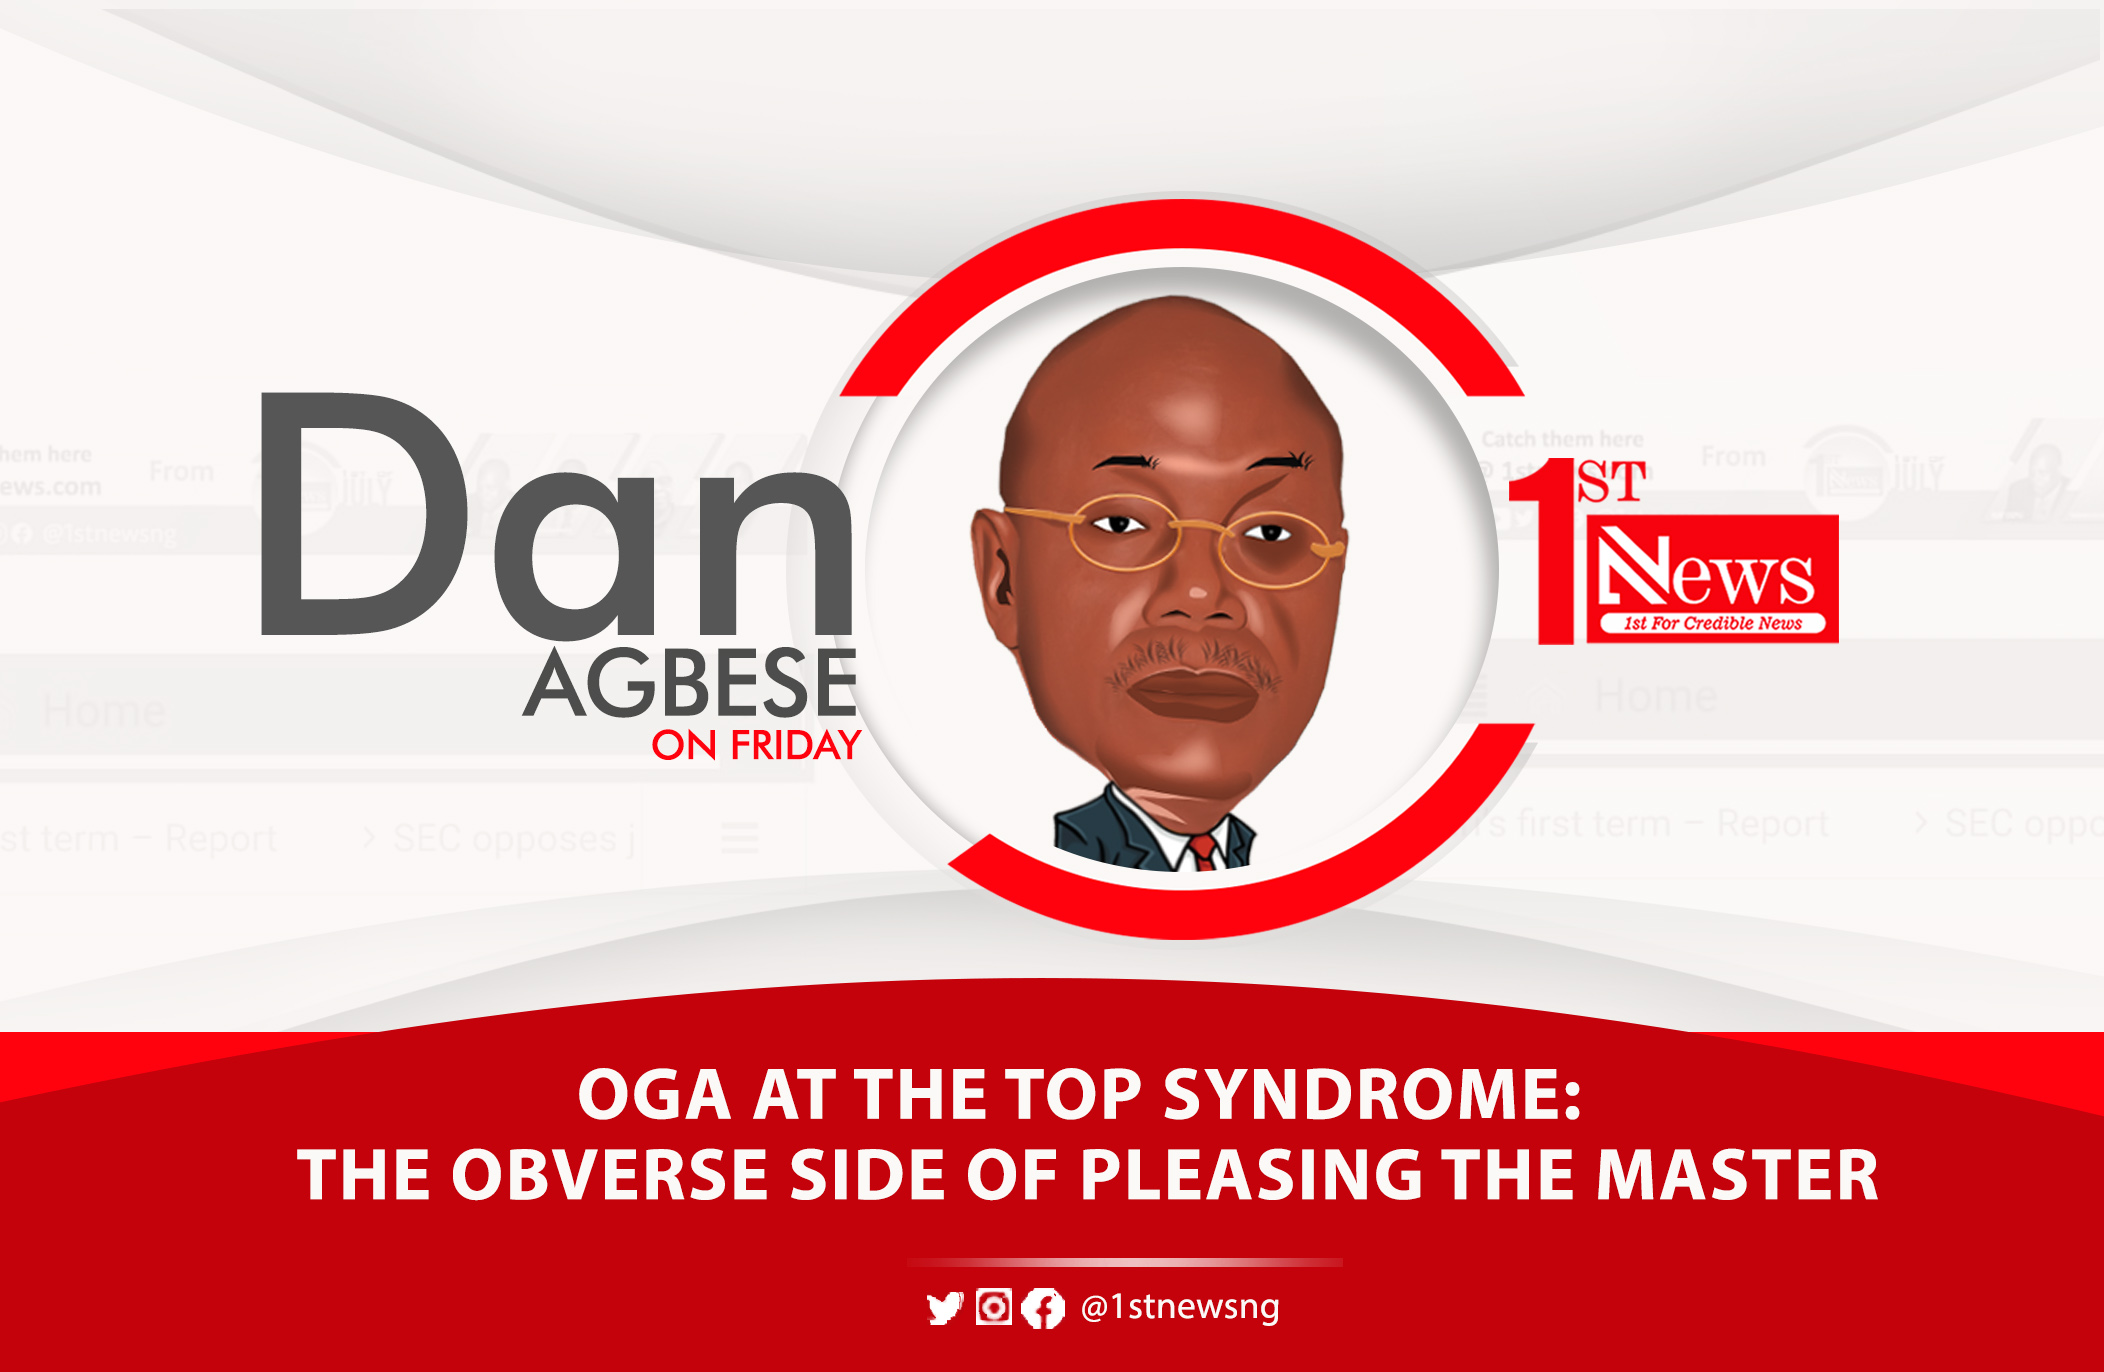 Oga at the top syndrome: The obverse side of pleasing the master - Dan Agbese